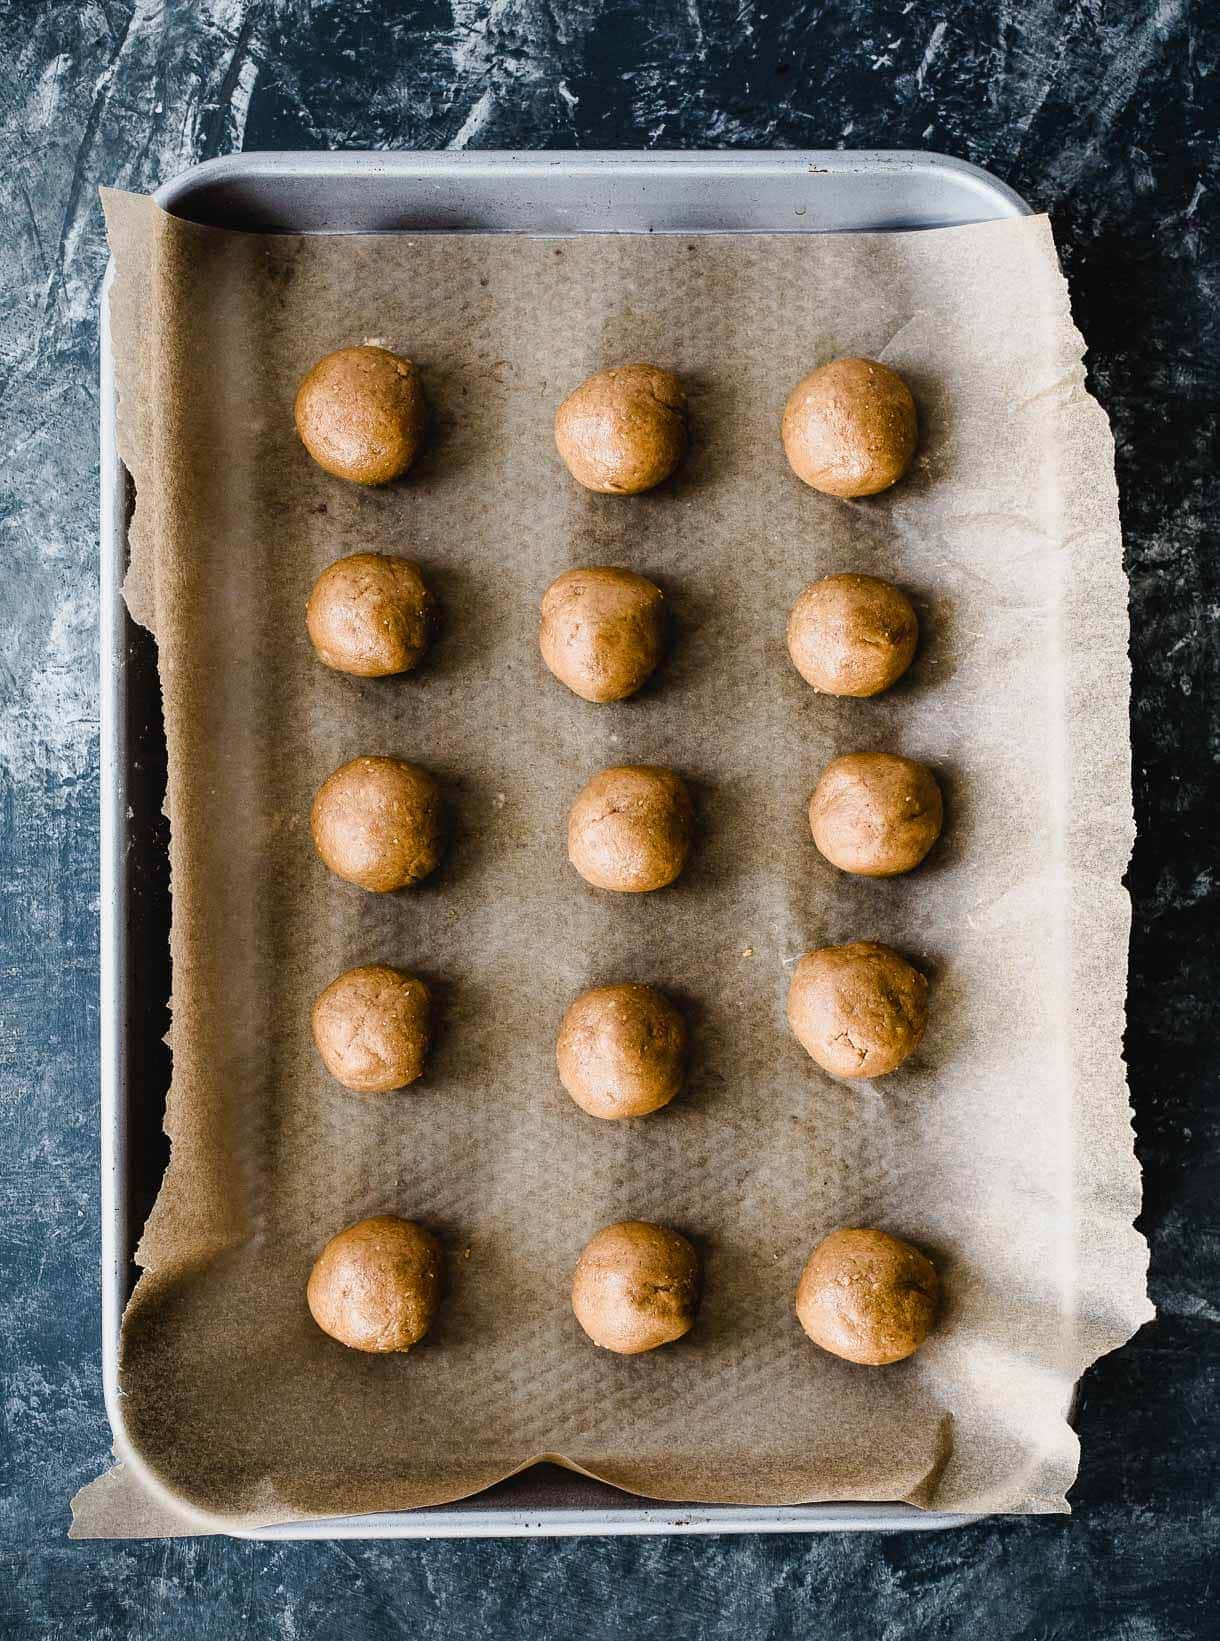 Chocolate Dipped Peanut Butter Cookie Dough Balls (gluten-free)